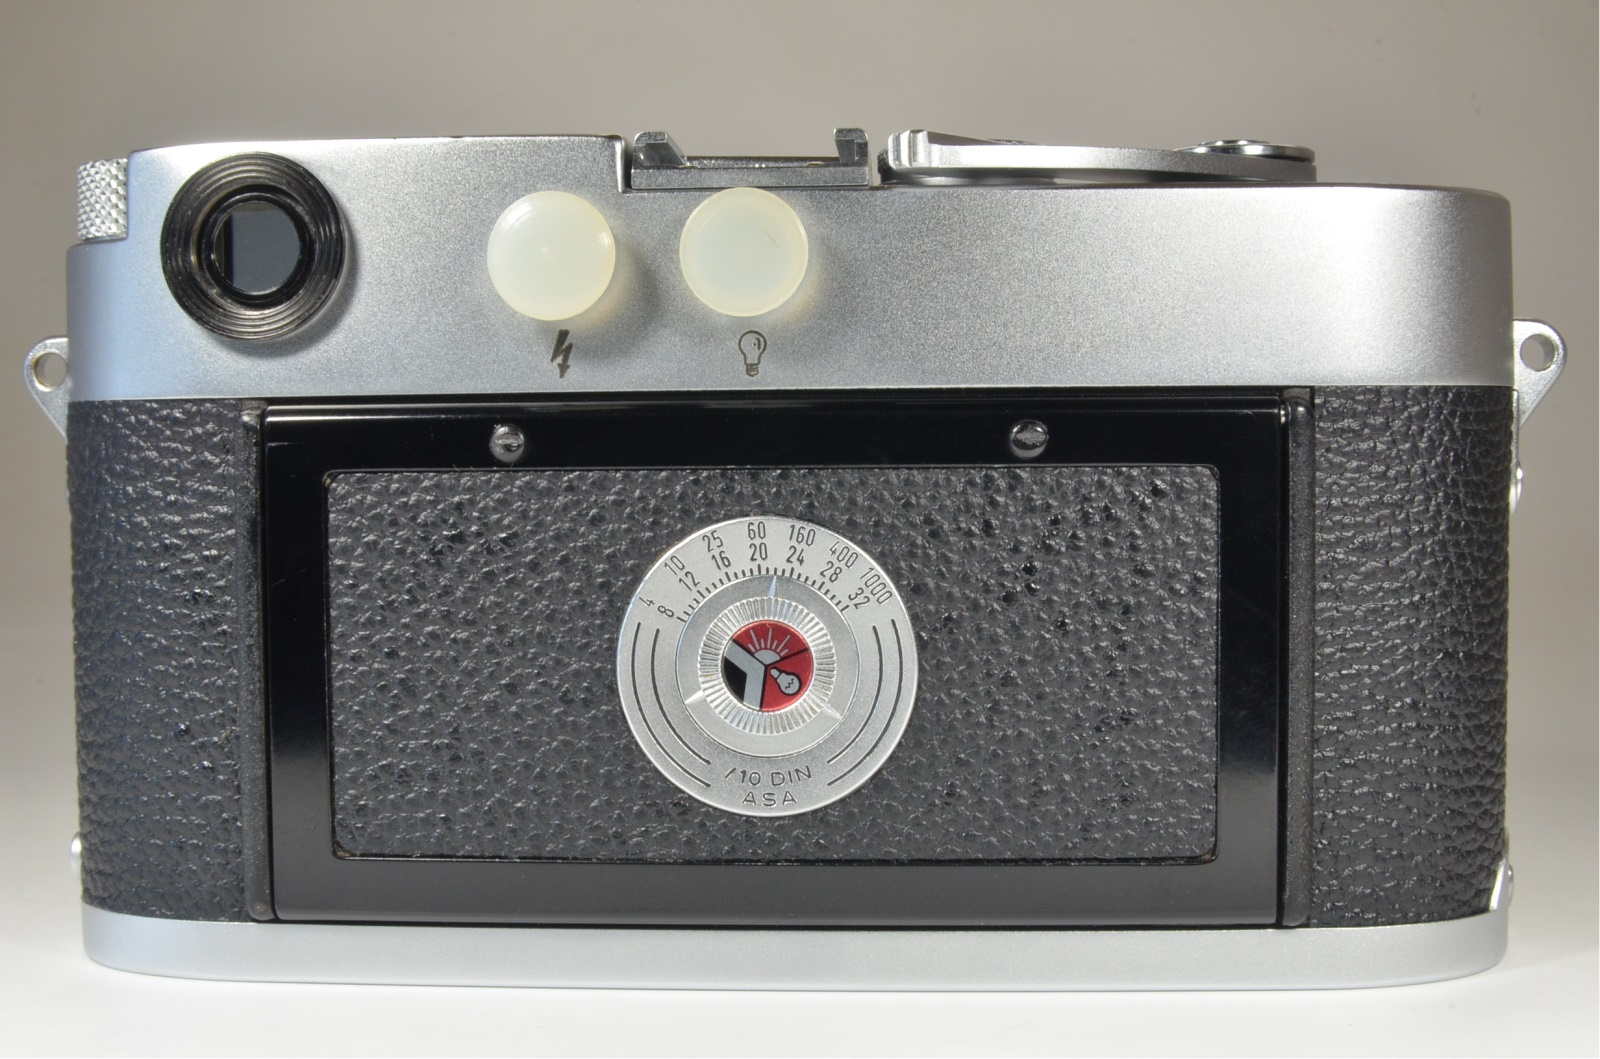 leica m3 double stroke s/n 894163 year 1957 the camera cla'd recently